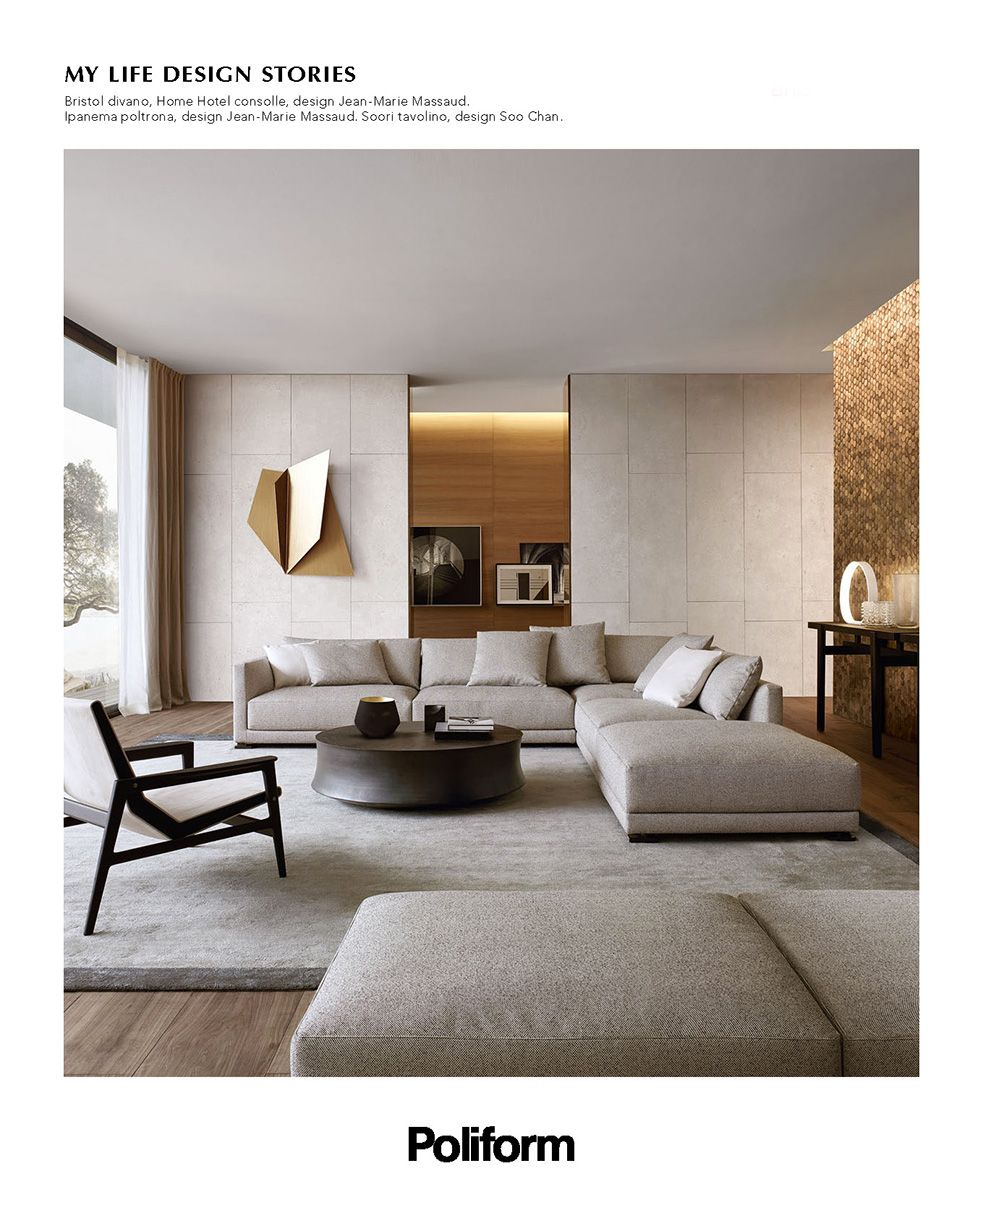 poliform rooms pinterest interiors living rooms and room poliform modular couchclean living roomsliving